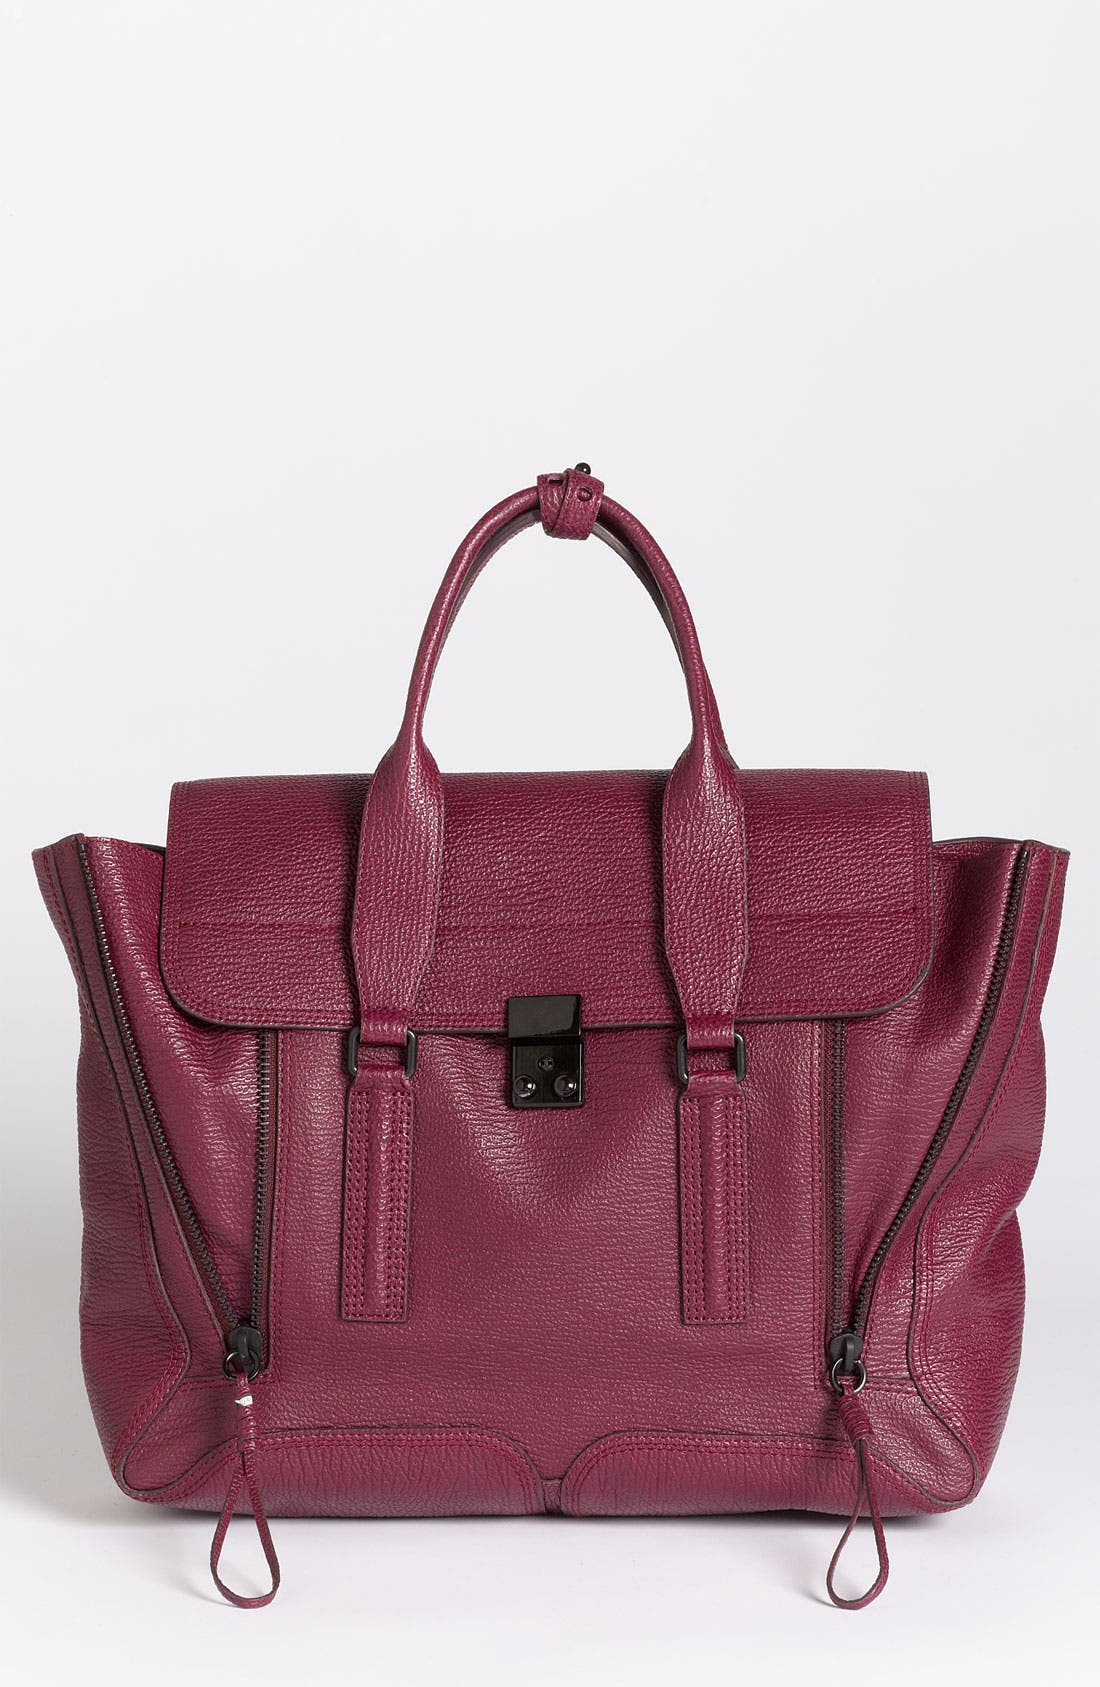 Alternate Image 1 Selected - 3.1 Phillip Lim 'Pashli' Leather Satchel